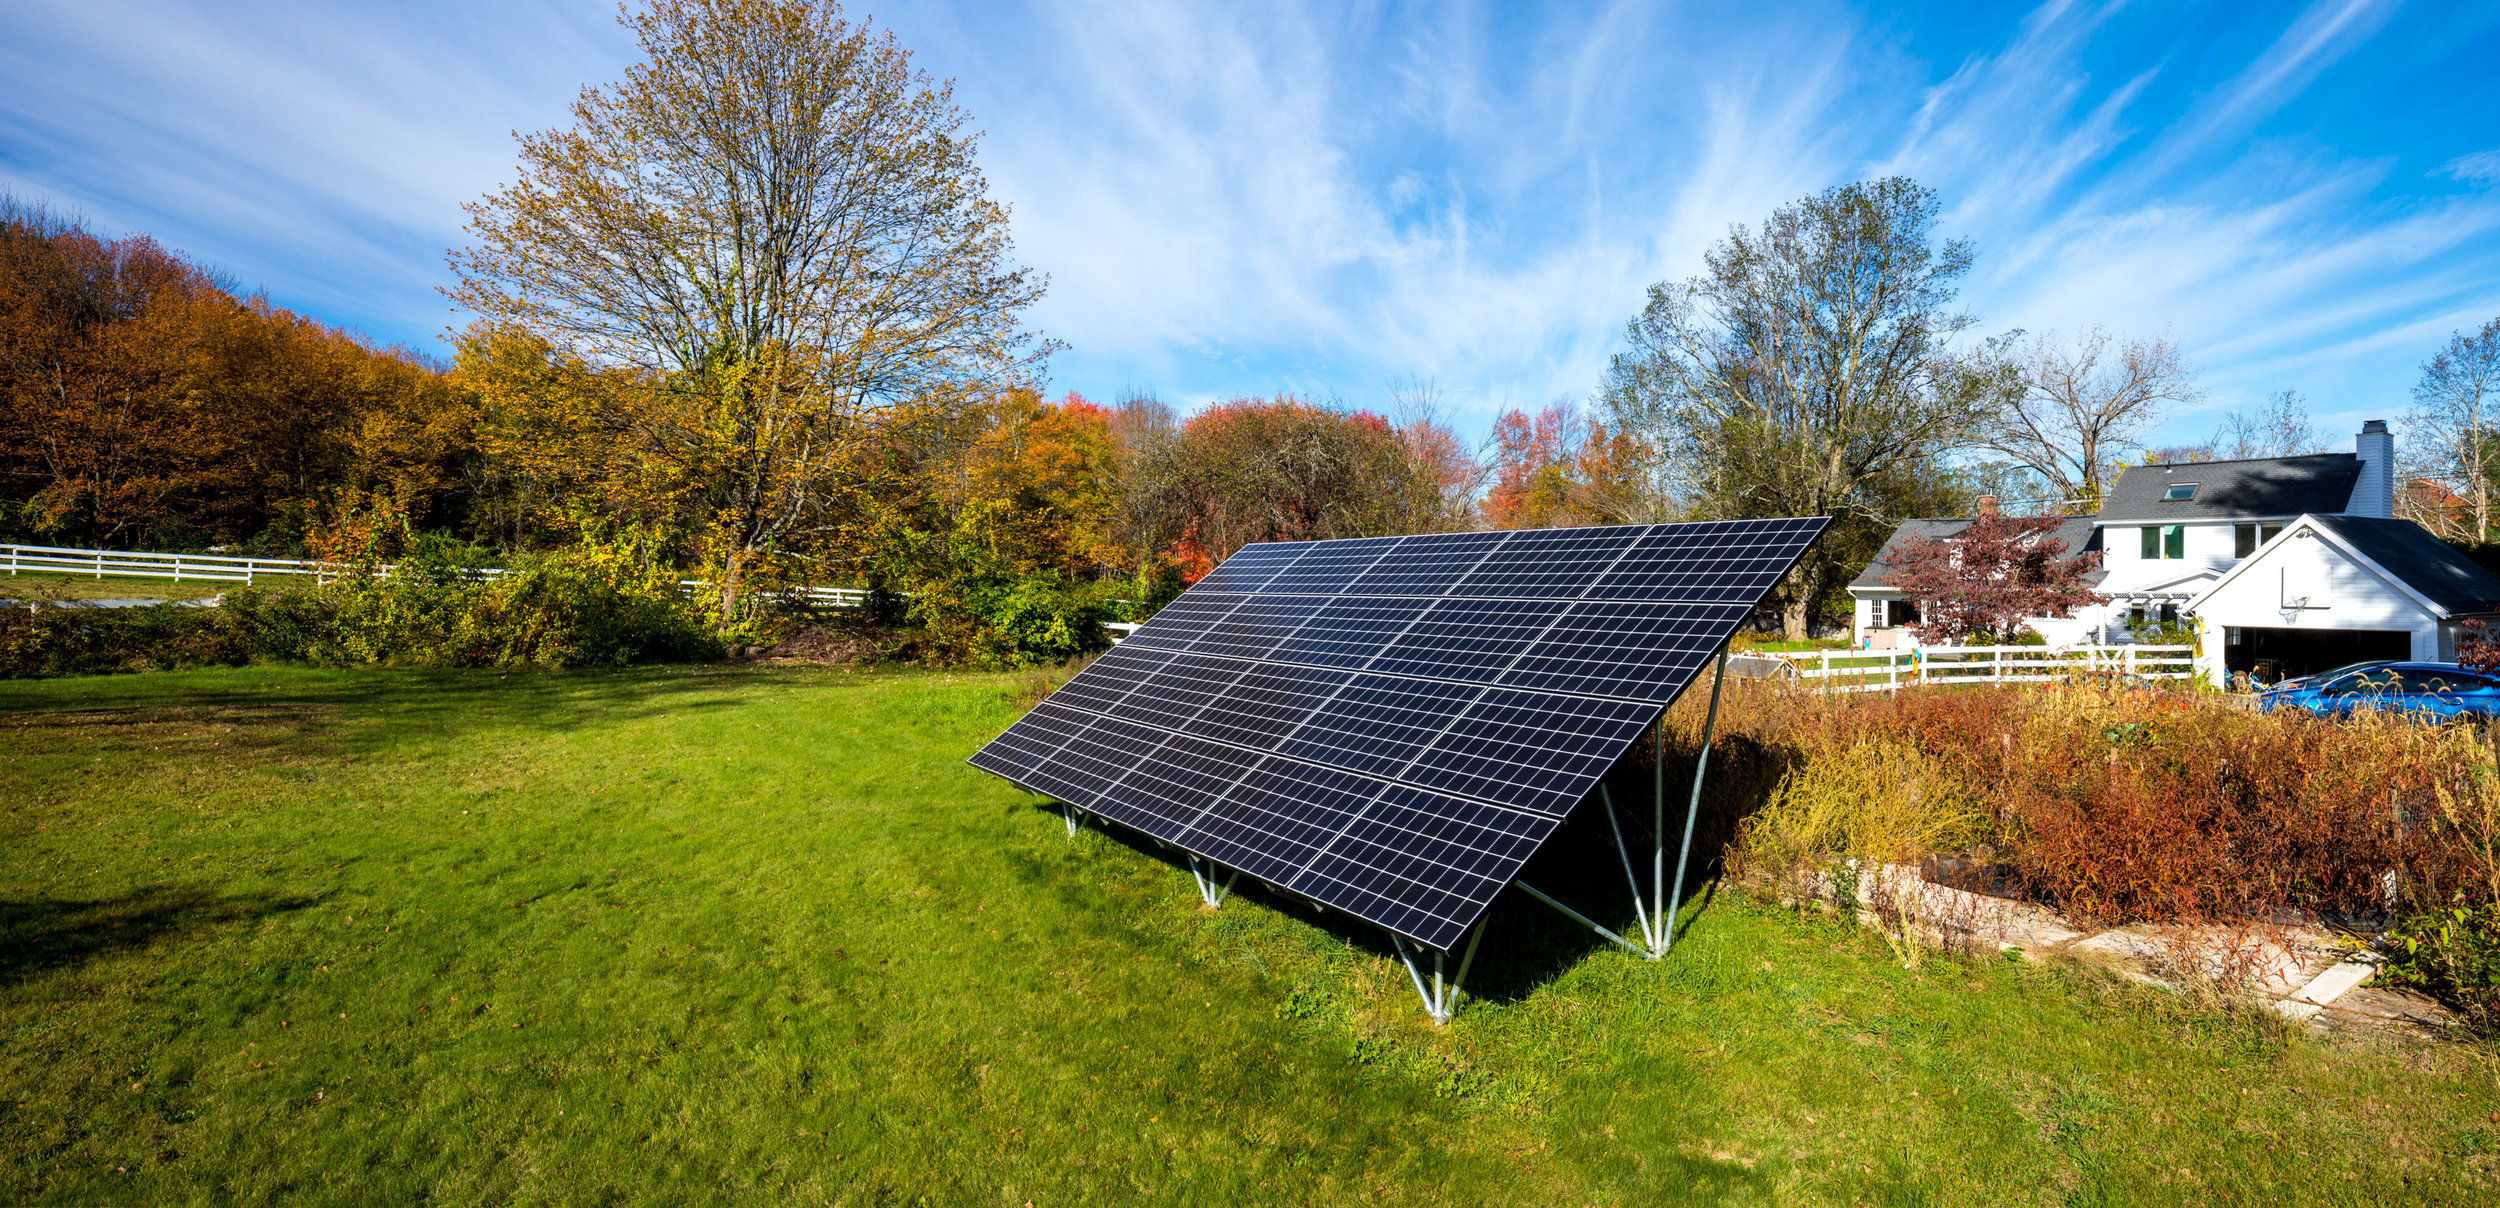 hadley-bay-rd-solar-ground-12.jpg